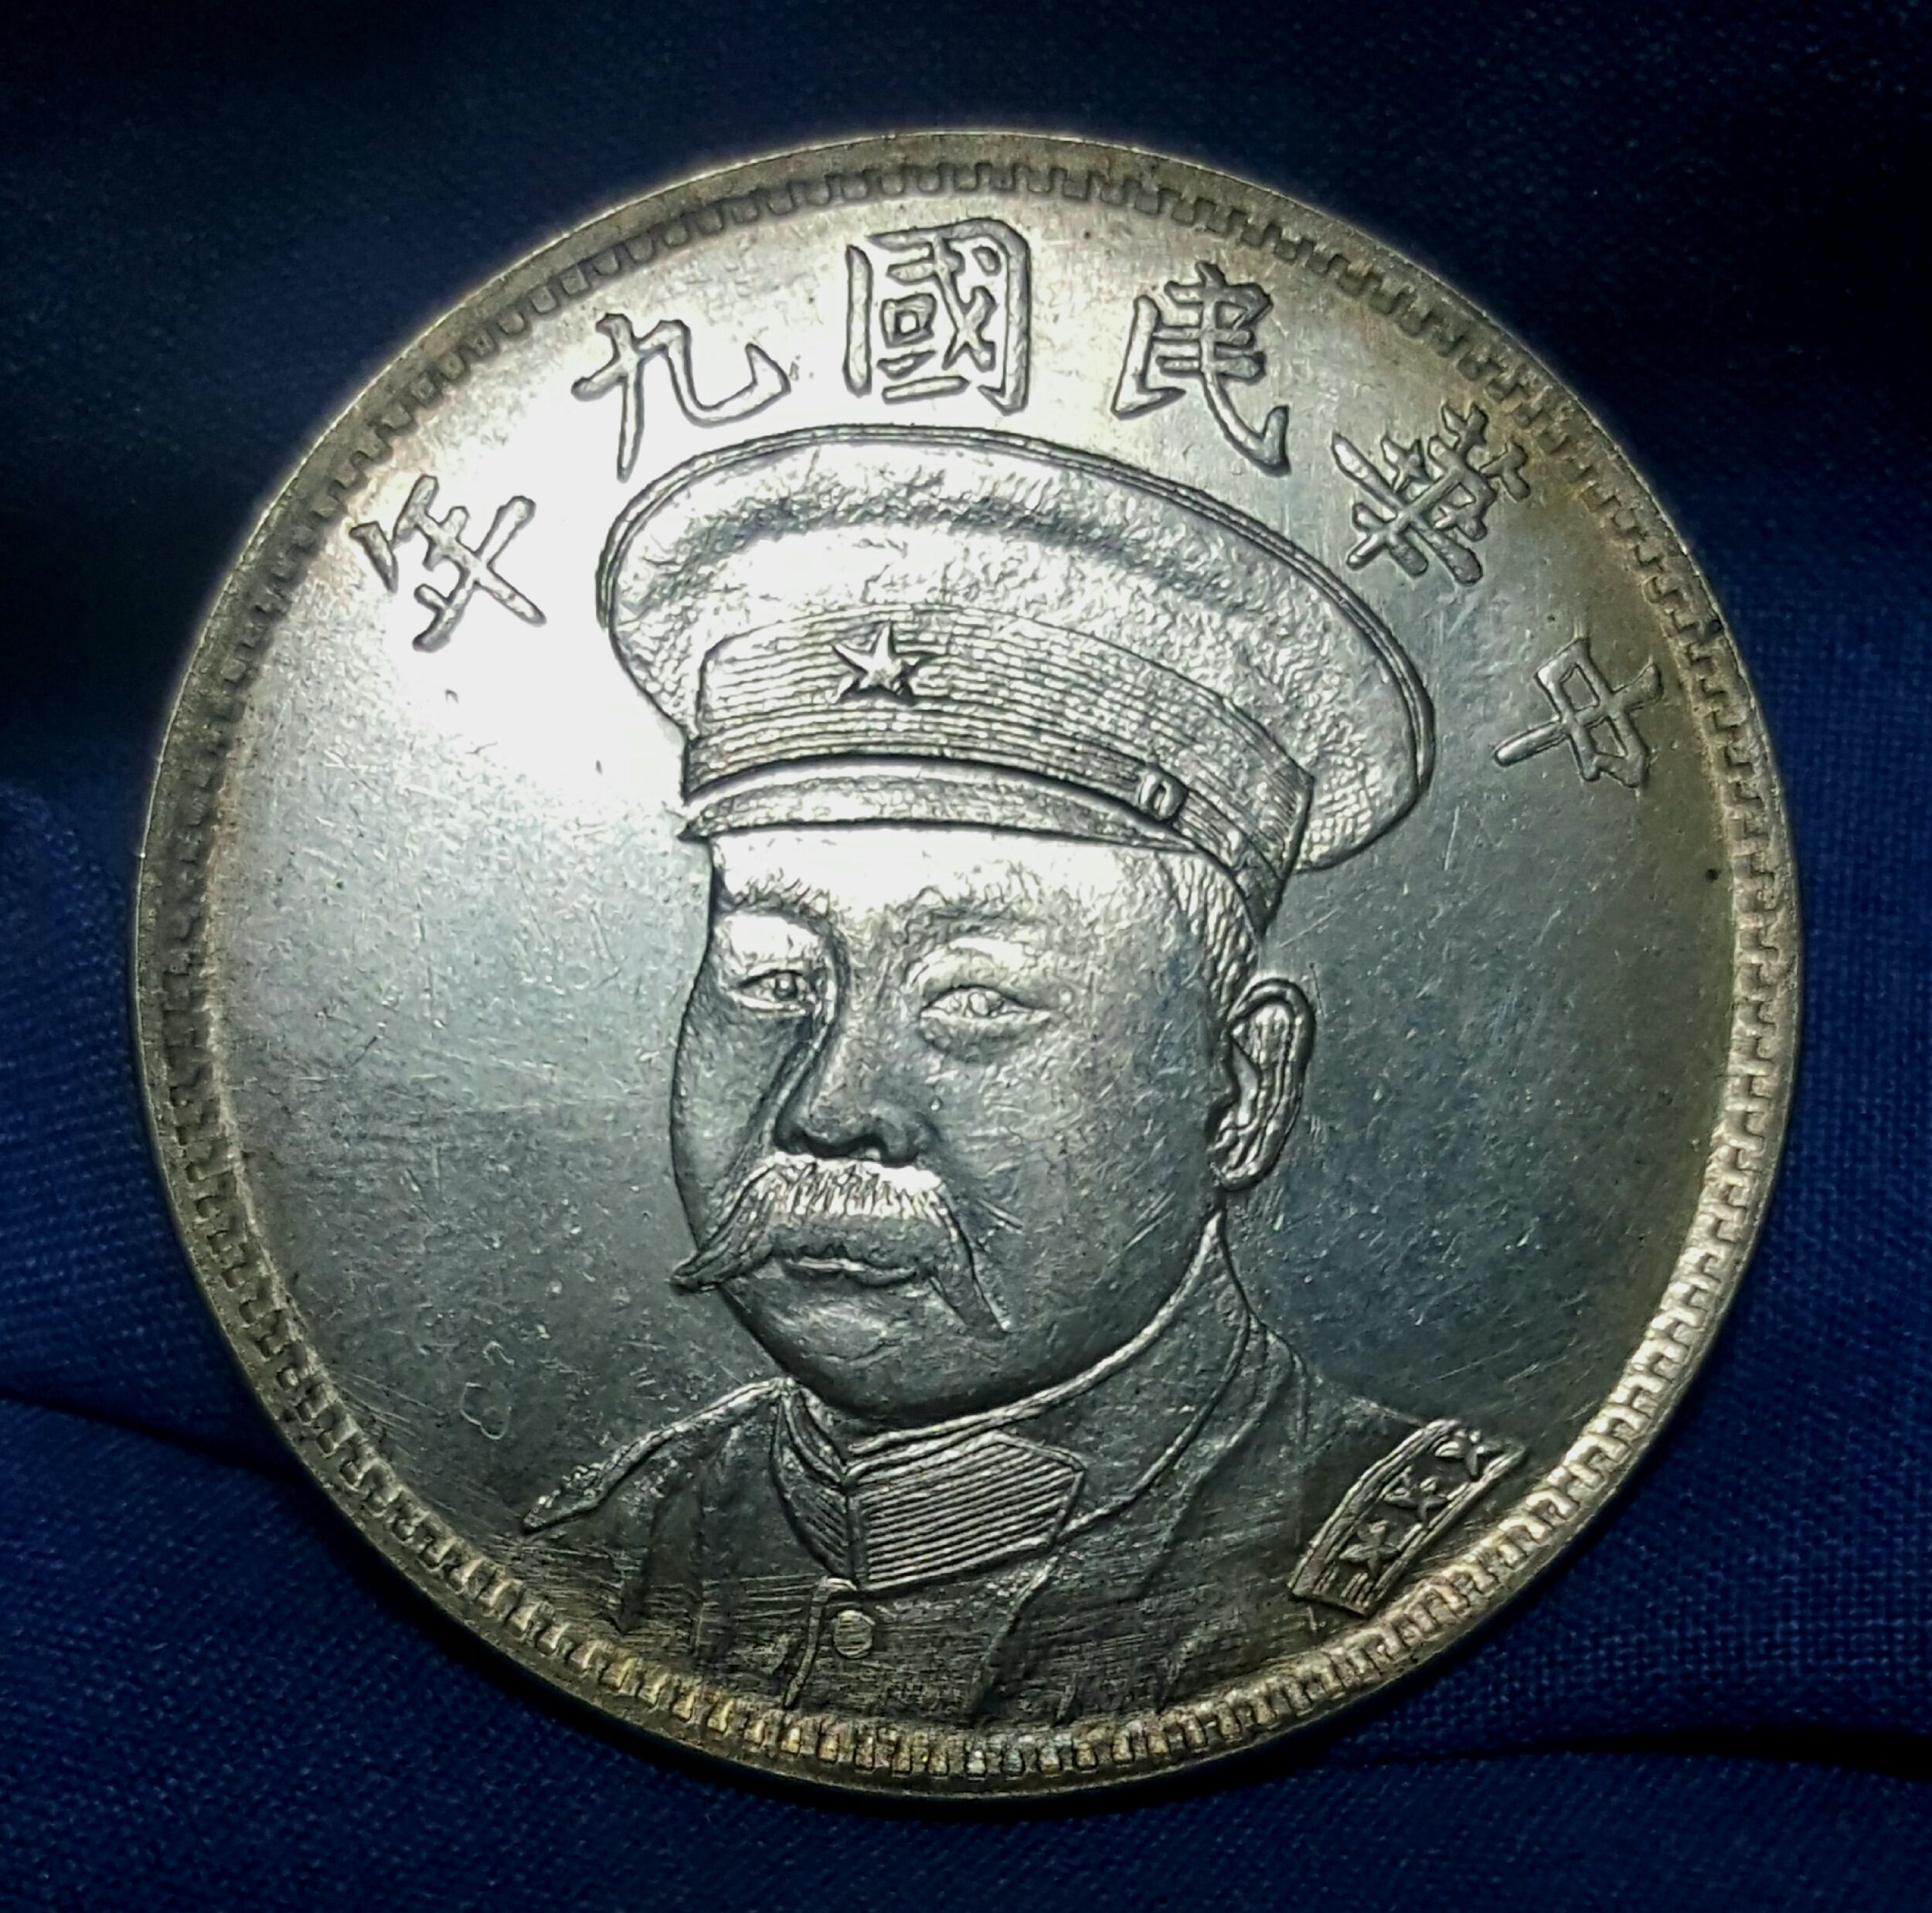 Rare 1920 China 50 Cent Silver Coin, Commemorative Ni Si